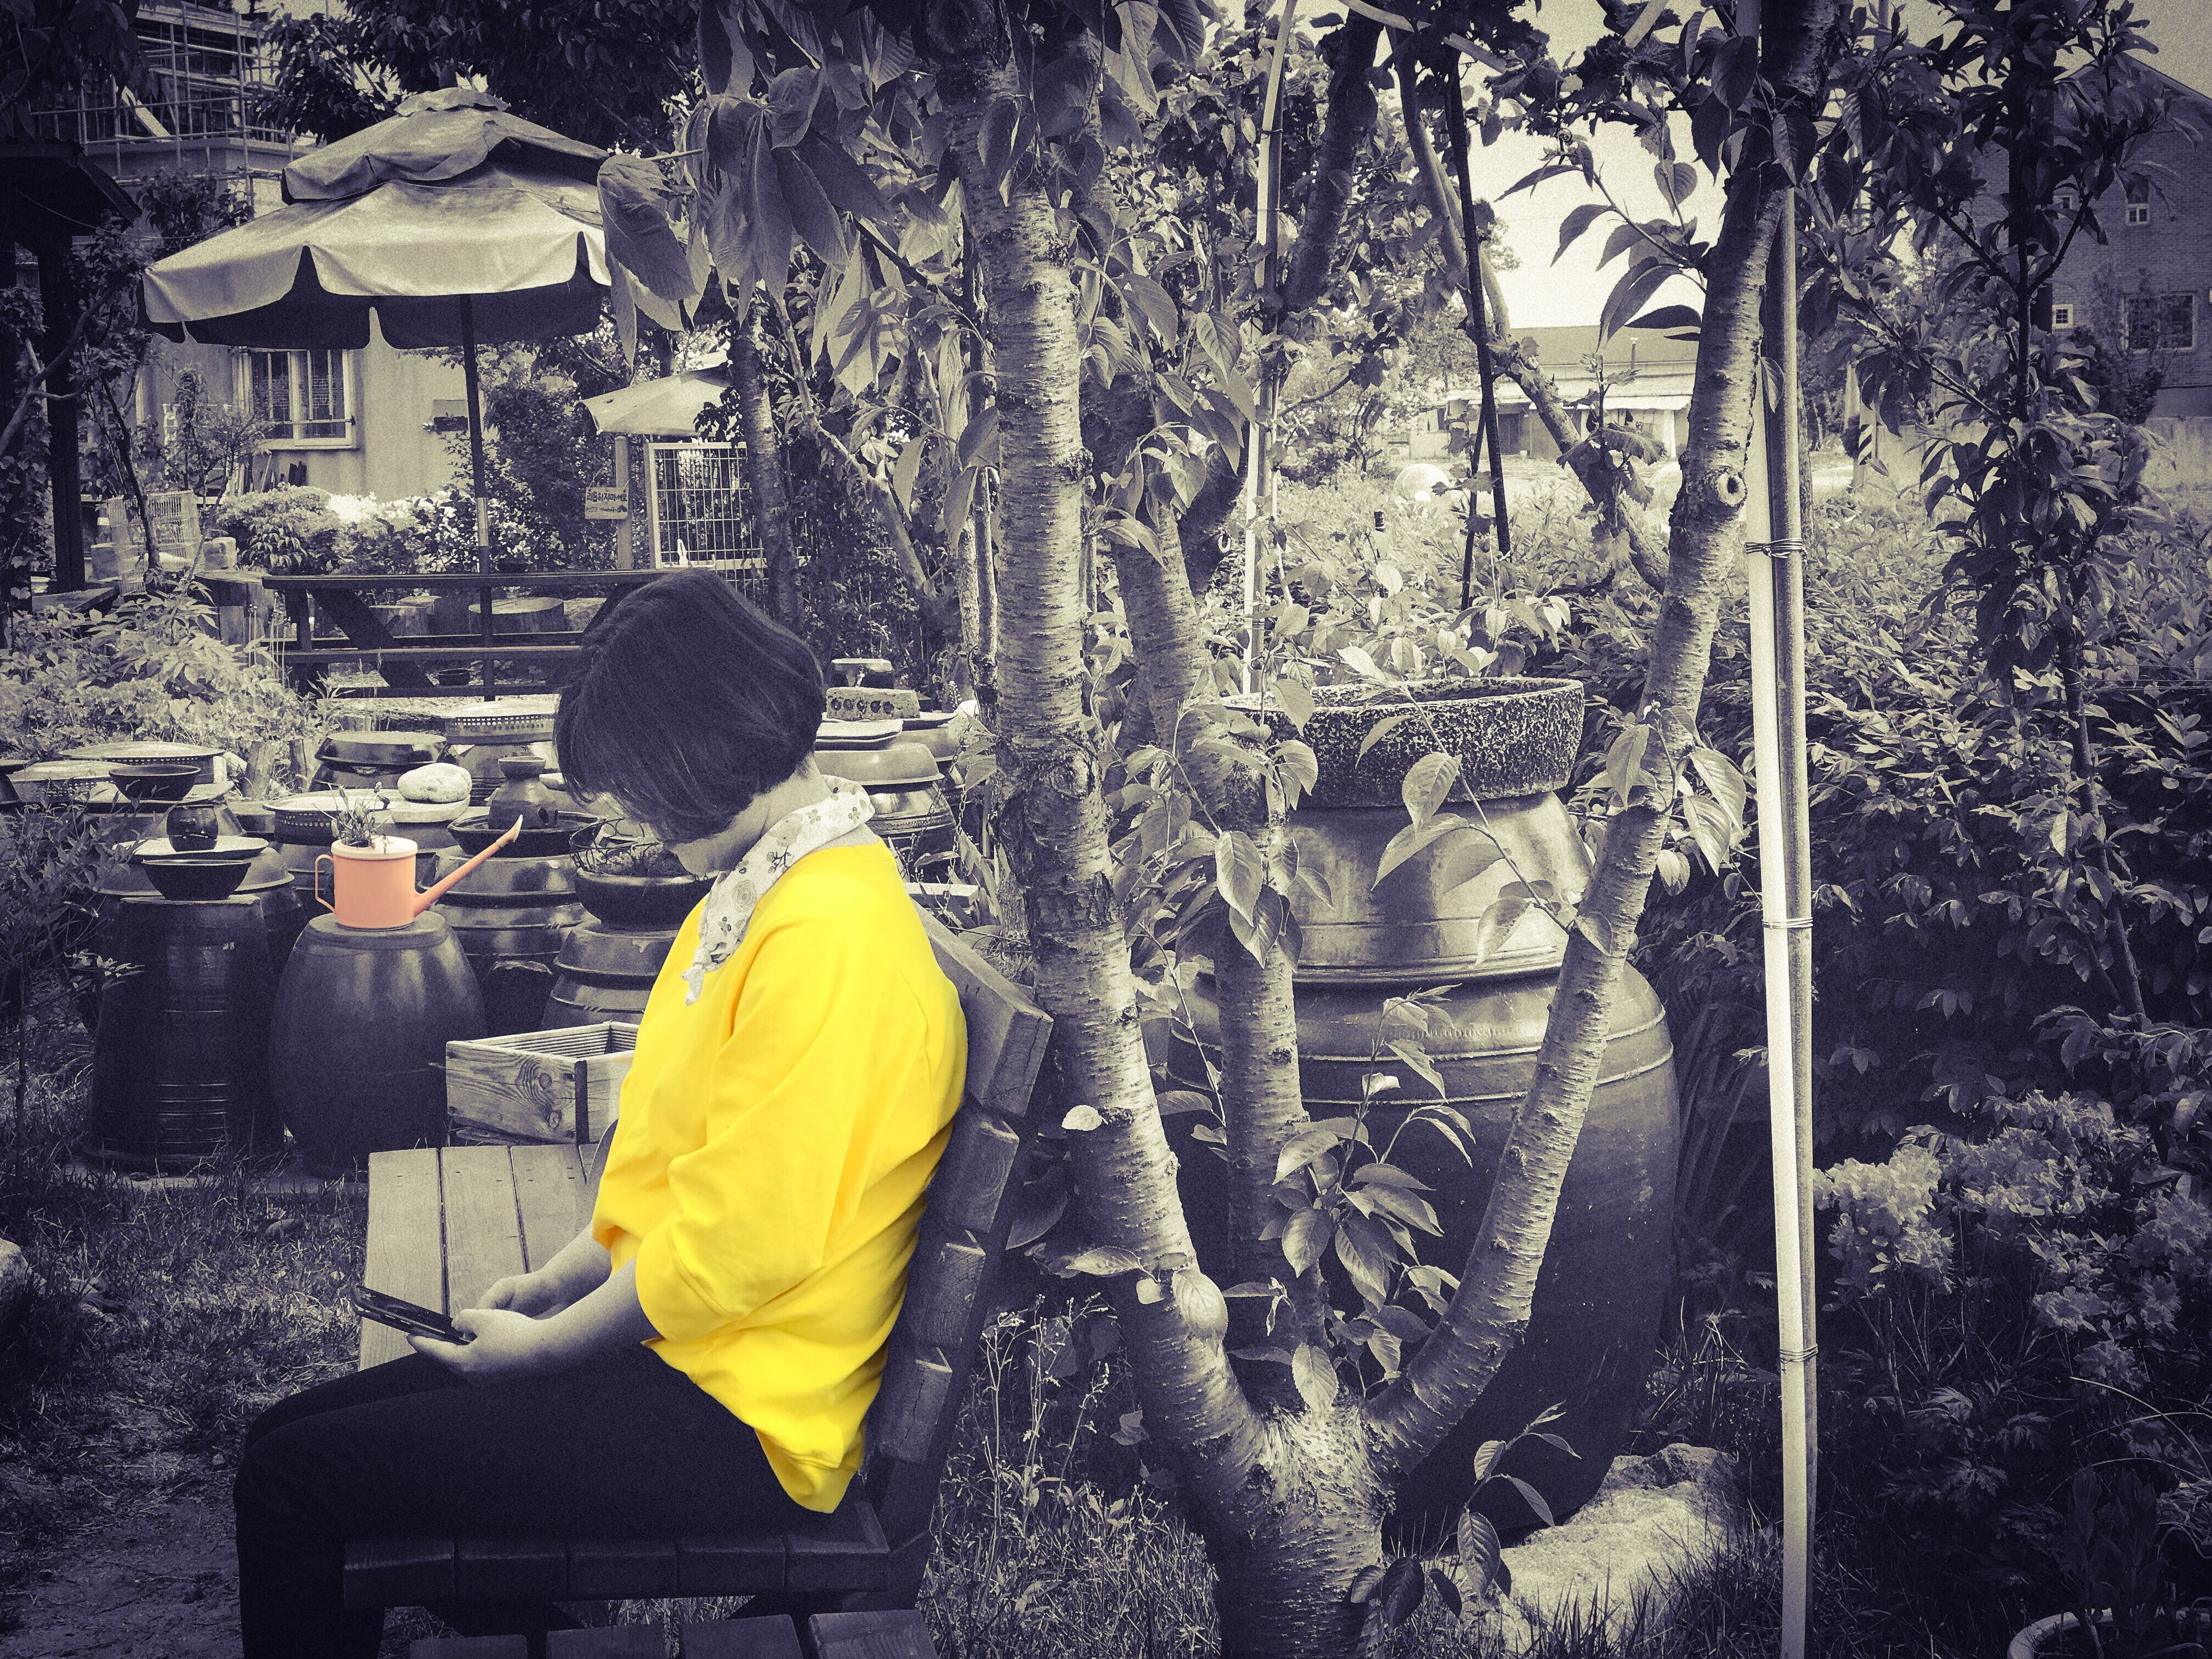 rear view, real people, tree, casual clothing, one person, yellow, sitting, lifestyles, outdoors, day, branch, architecture, men, nature, people